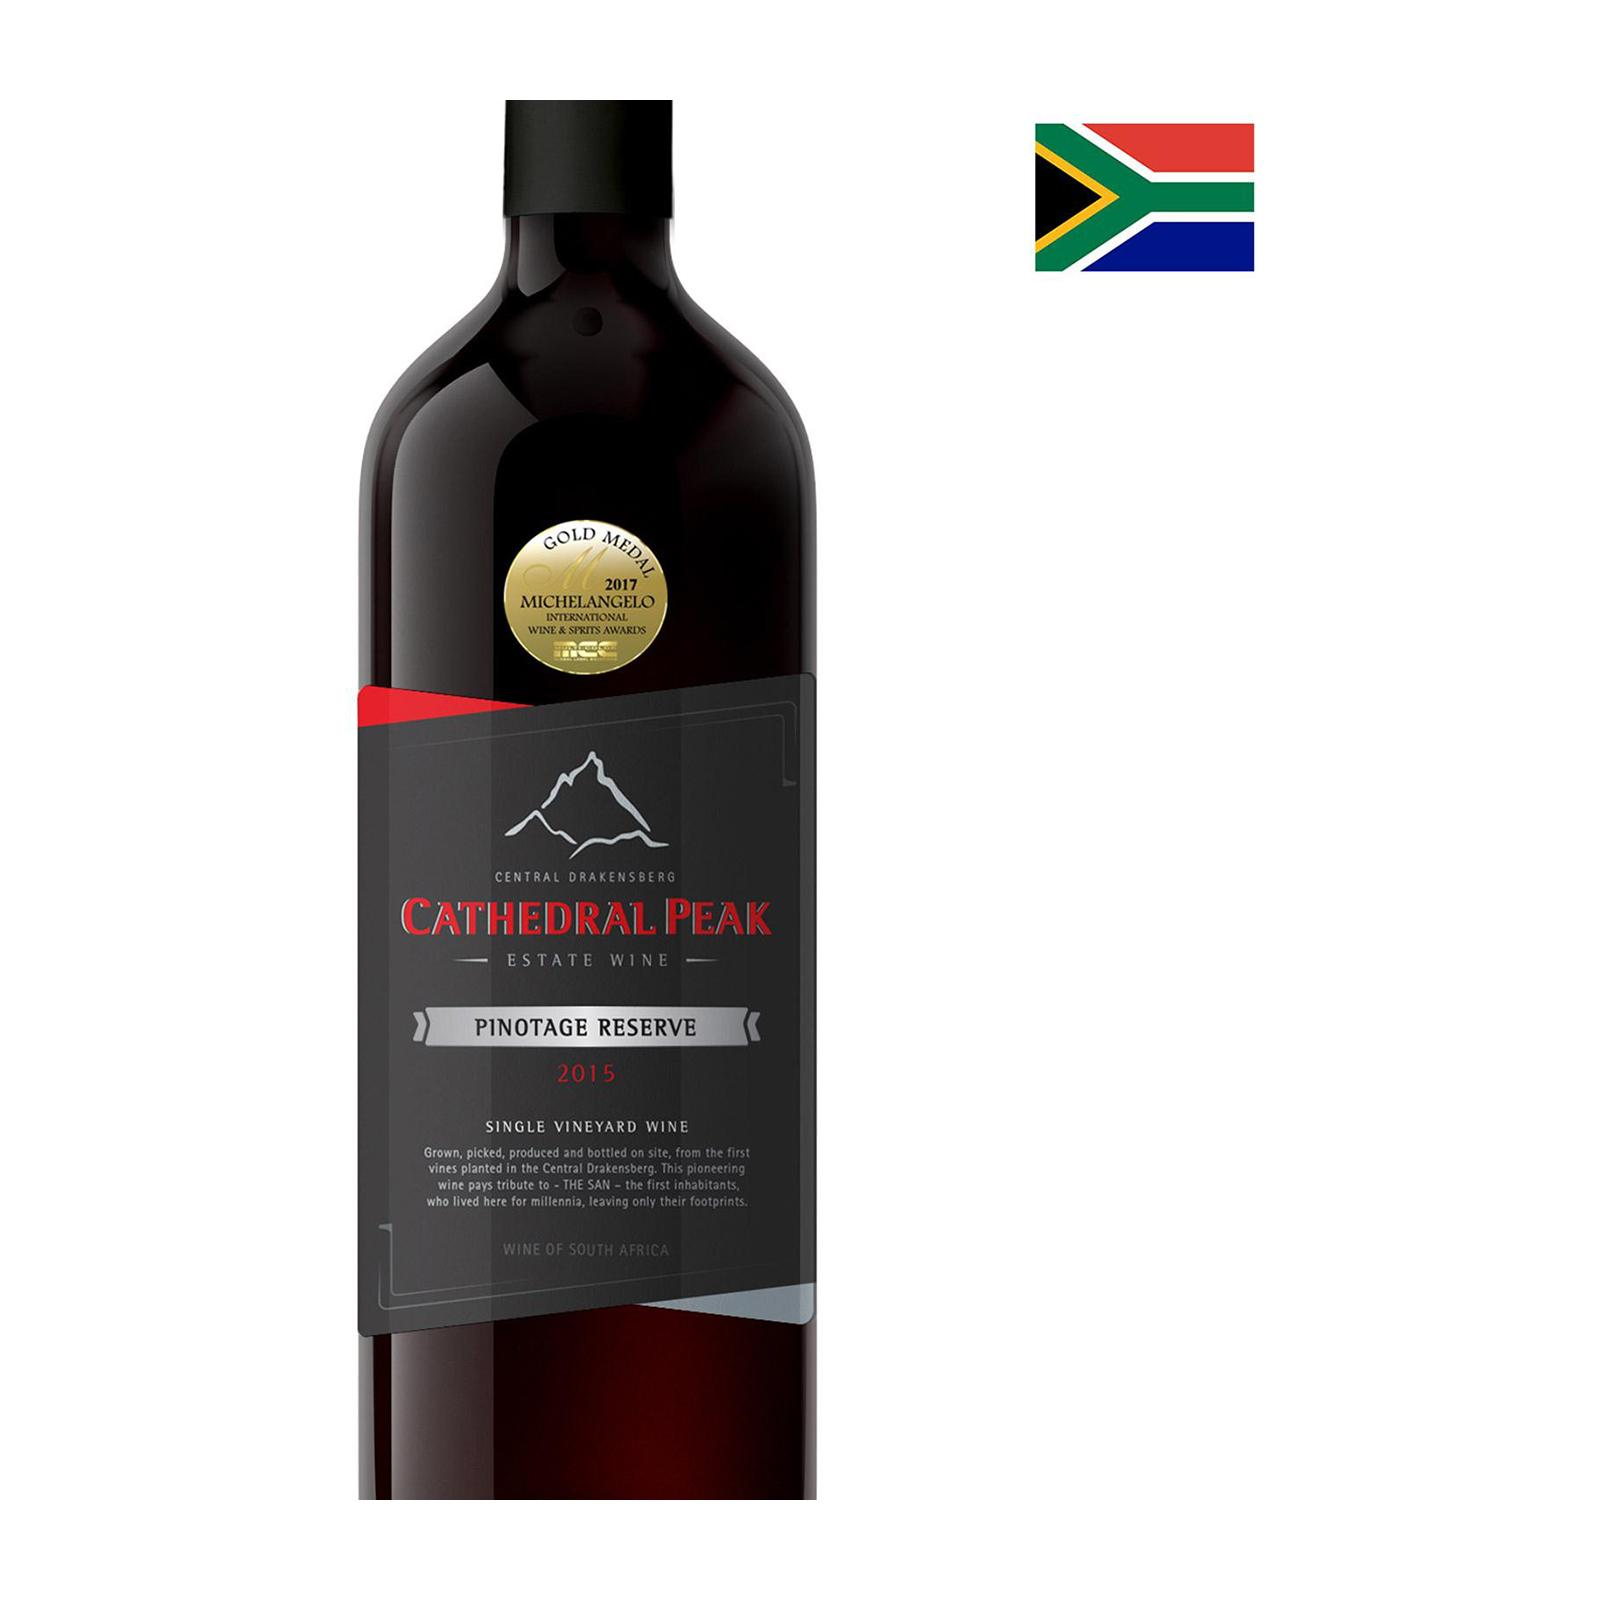 Cathedral Peak Estate Wines Pinotage Reserve